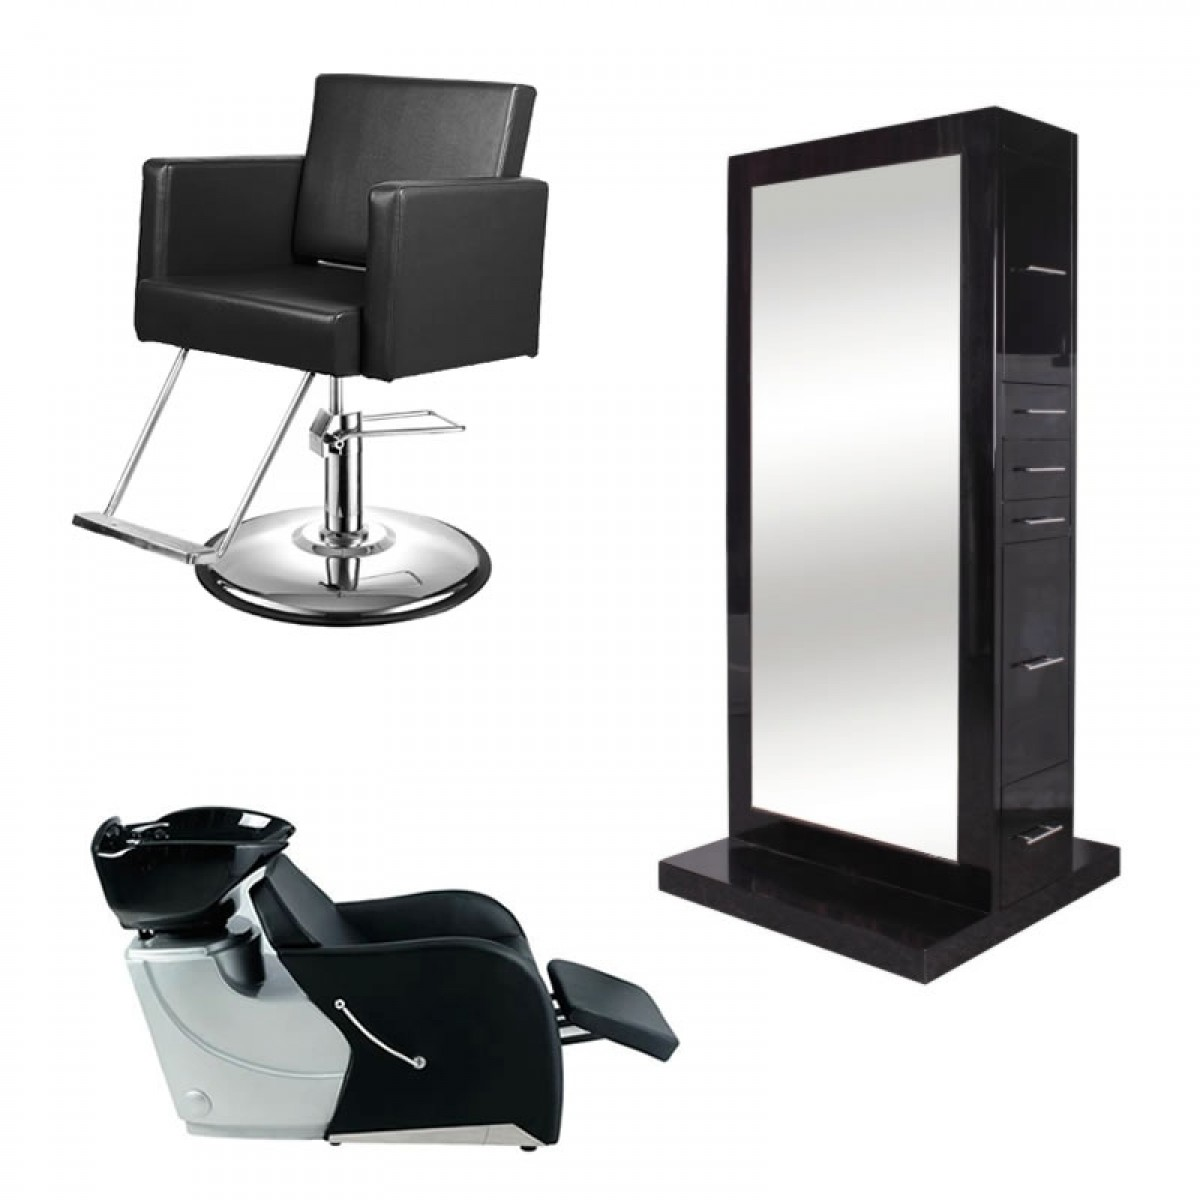 Salon Equipment Package, Salon Furniture Package, Wholesale Salon Equipment (SALE)